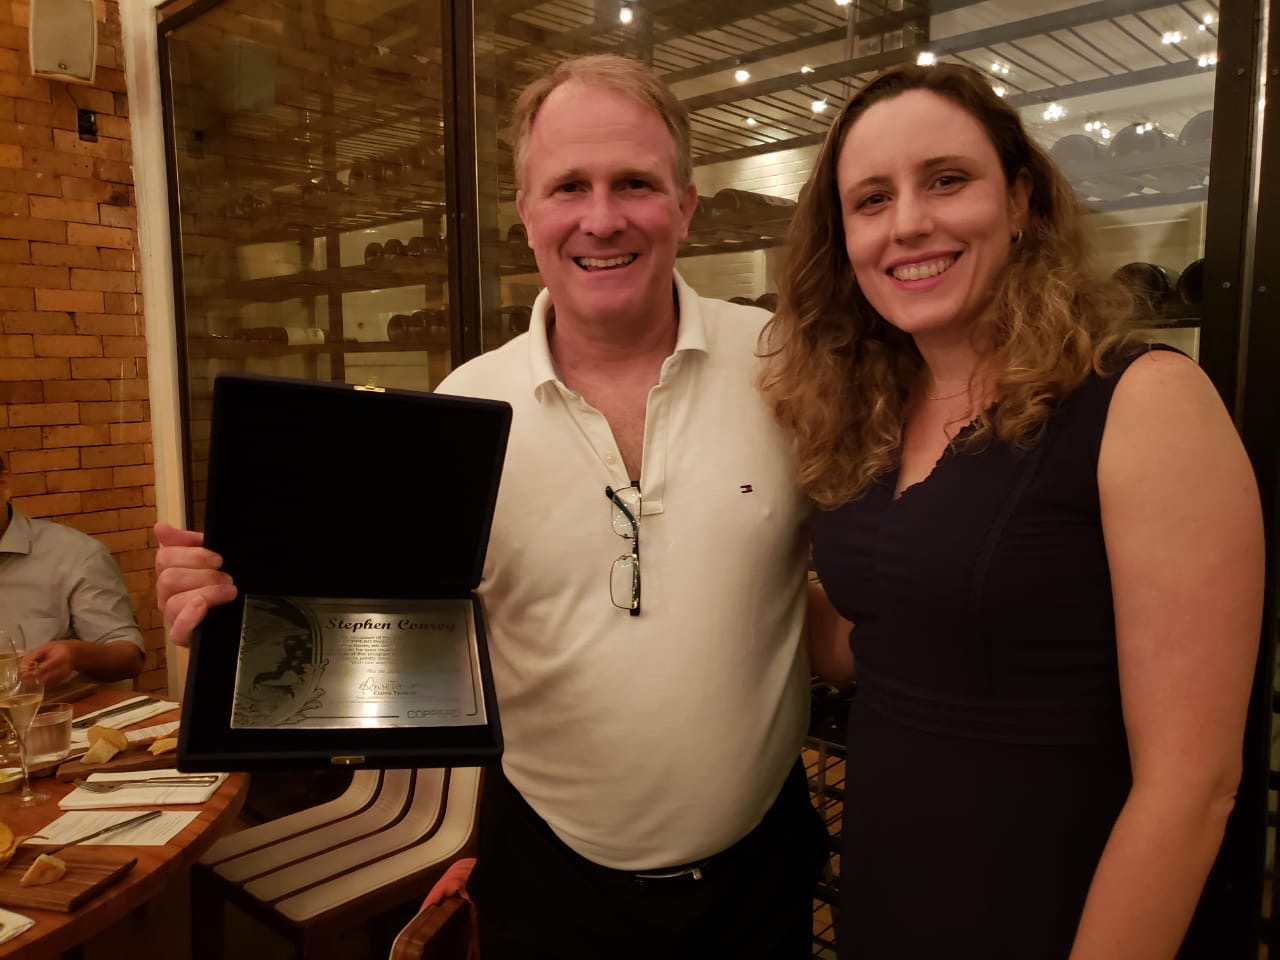 Dr. Steve Conroy (Associate Dean, School of Business) recognized with a plaque for his support of joint consulting projects with COPPEAD-UFRJ (Brazil) at the 20 Year Celebration.